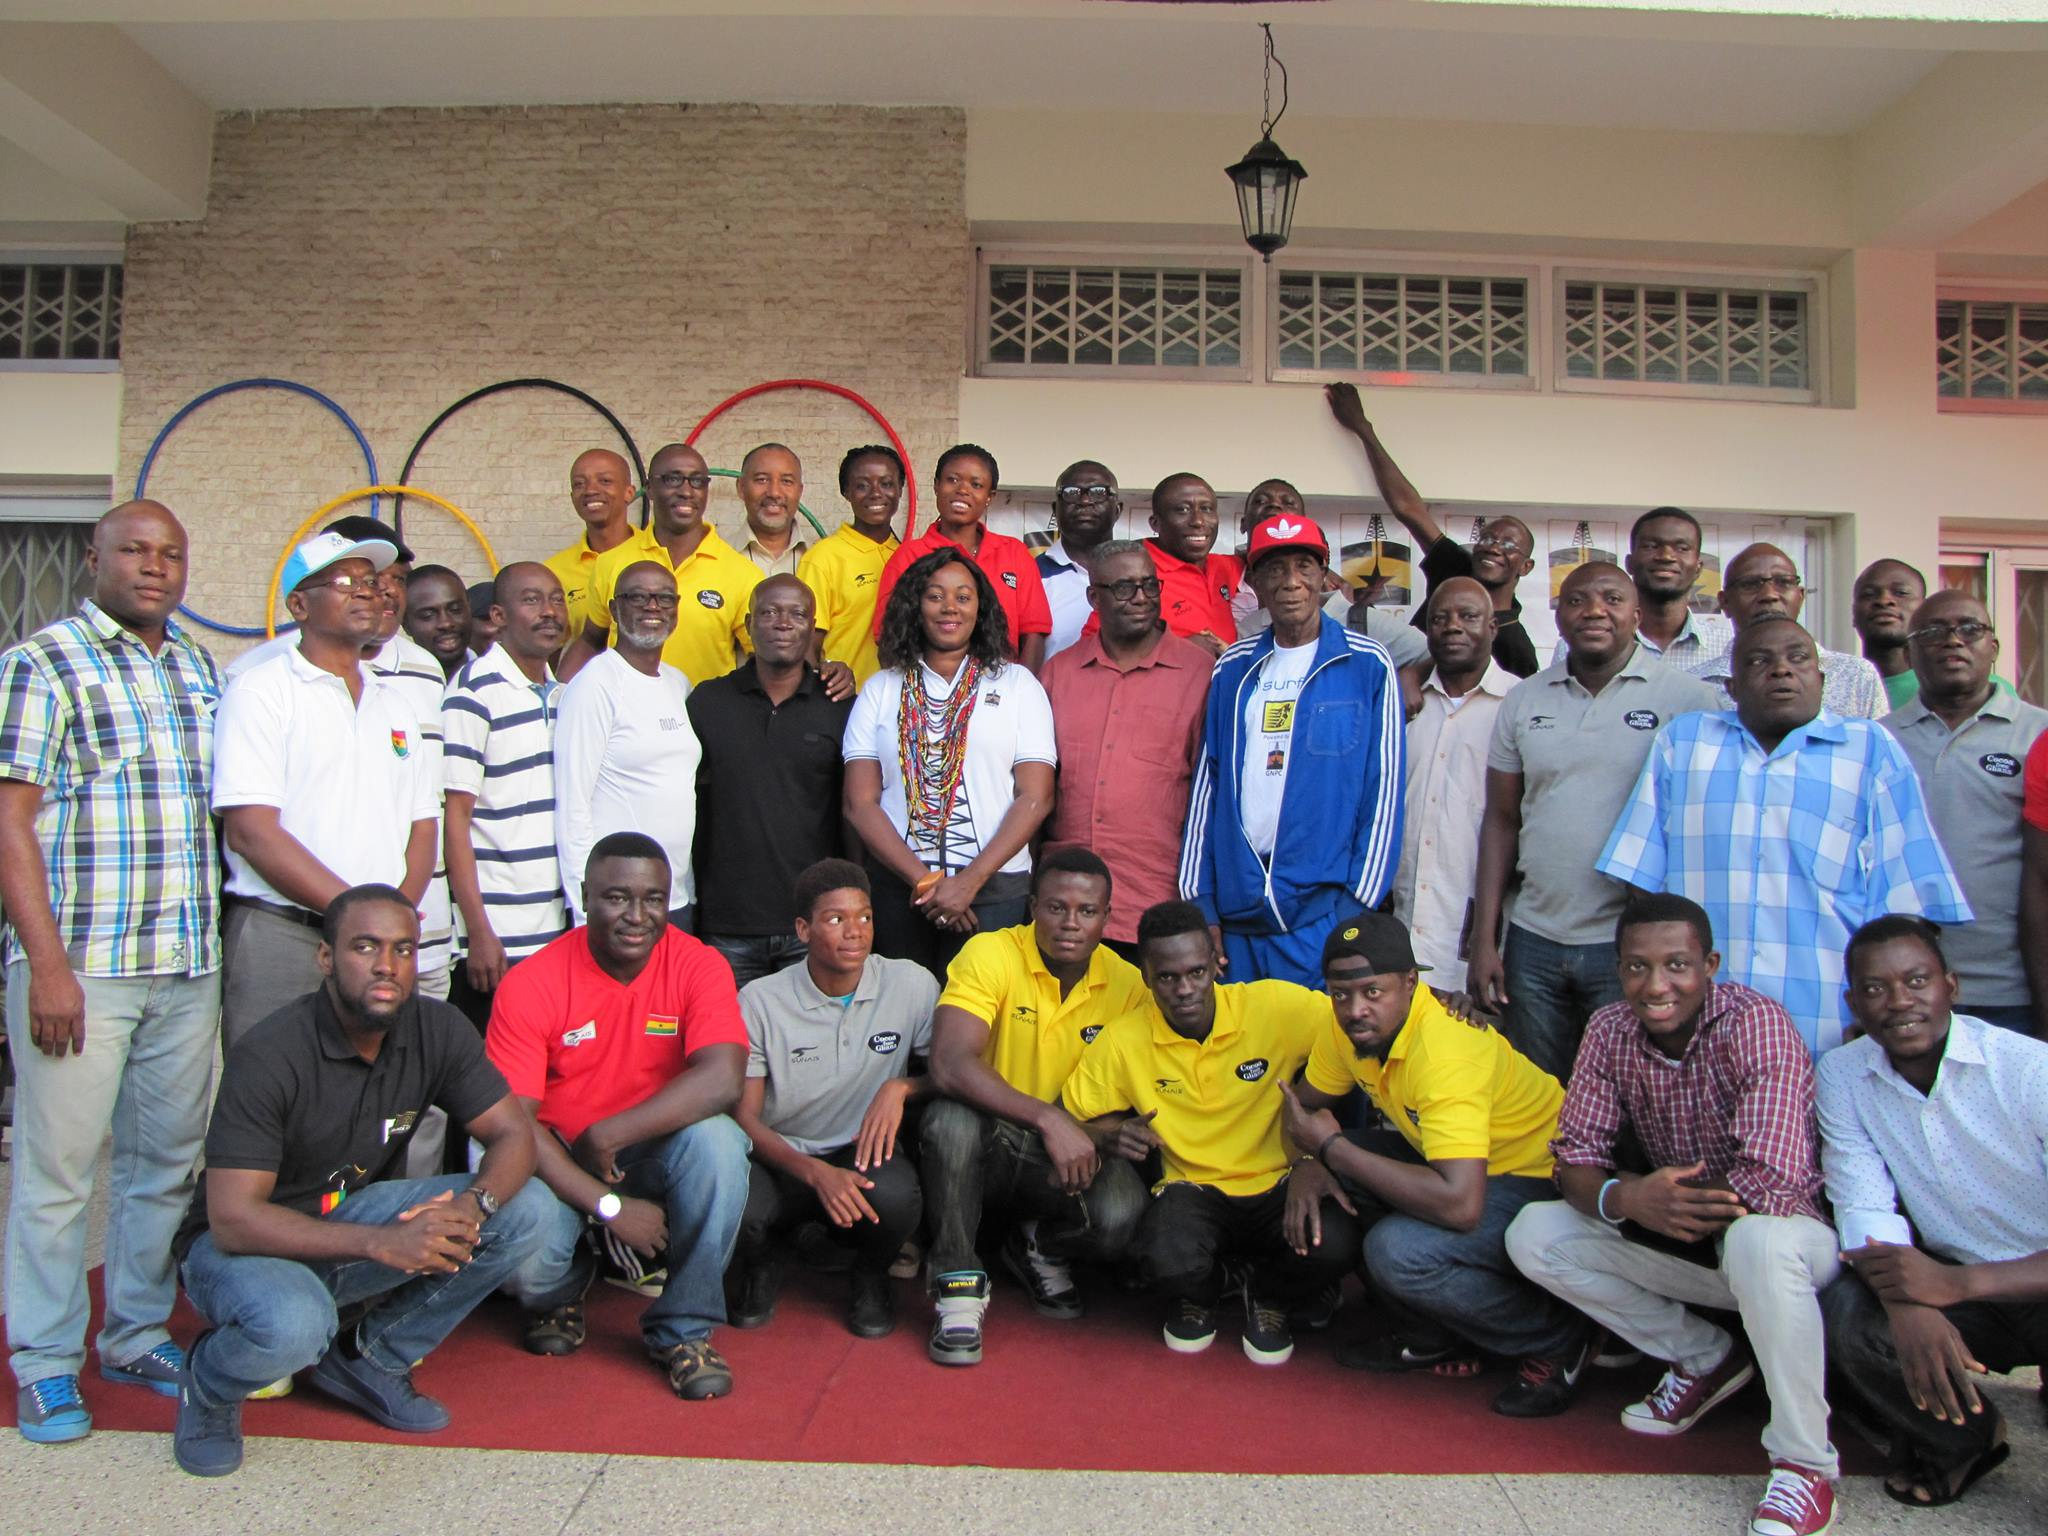 Minister of Sports sends Goodwill Message to Team Ghana